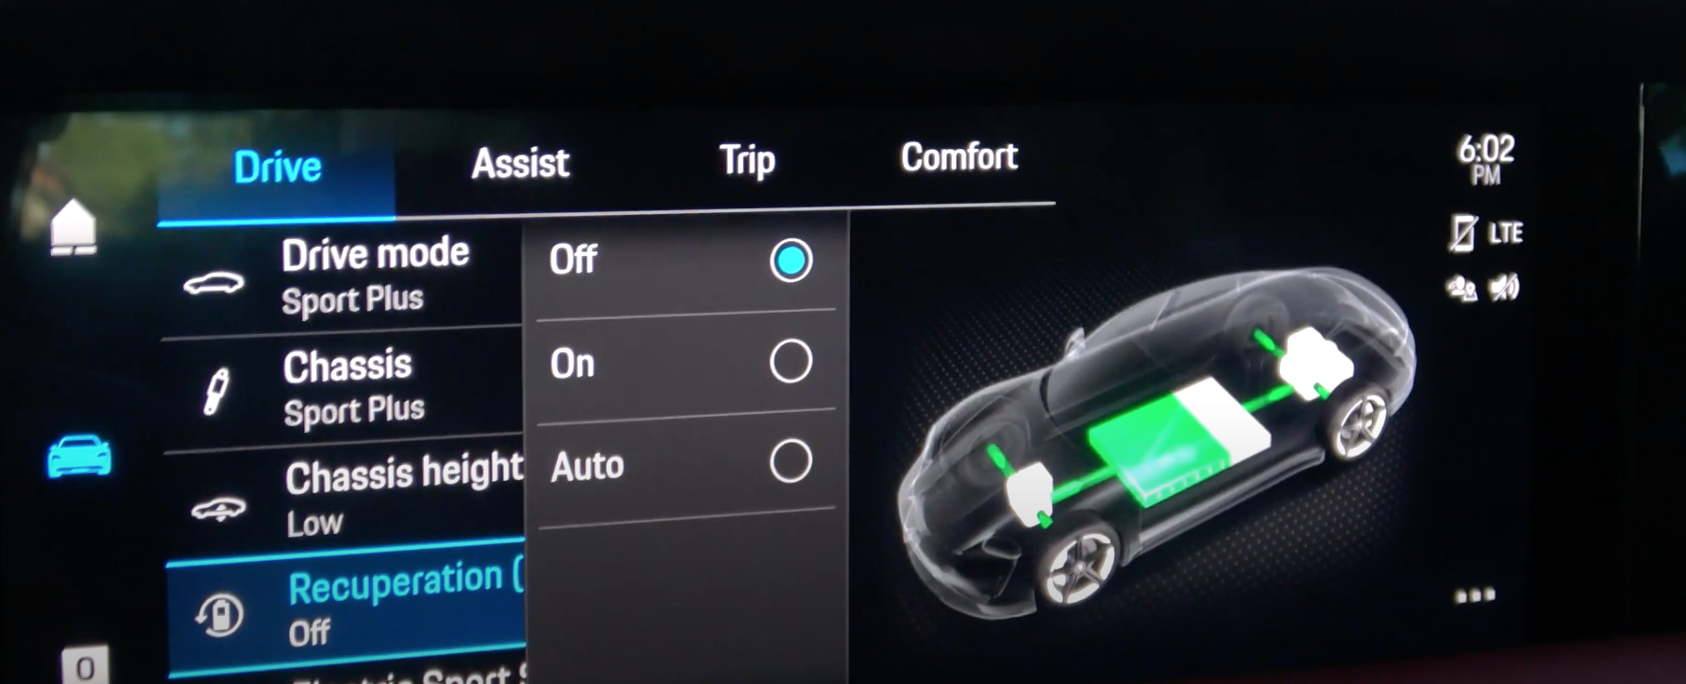 Driving mode settings with the option to turn the recuperation on and off